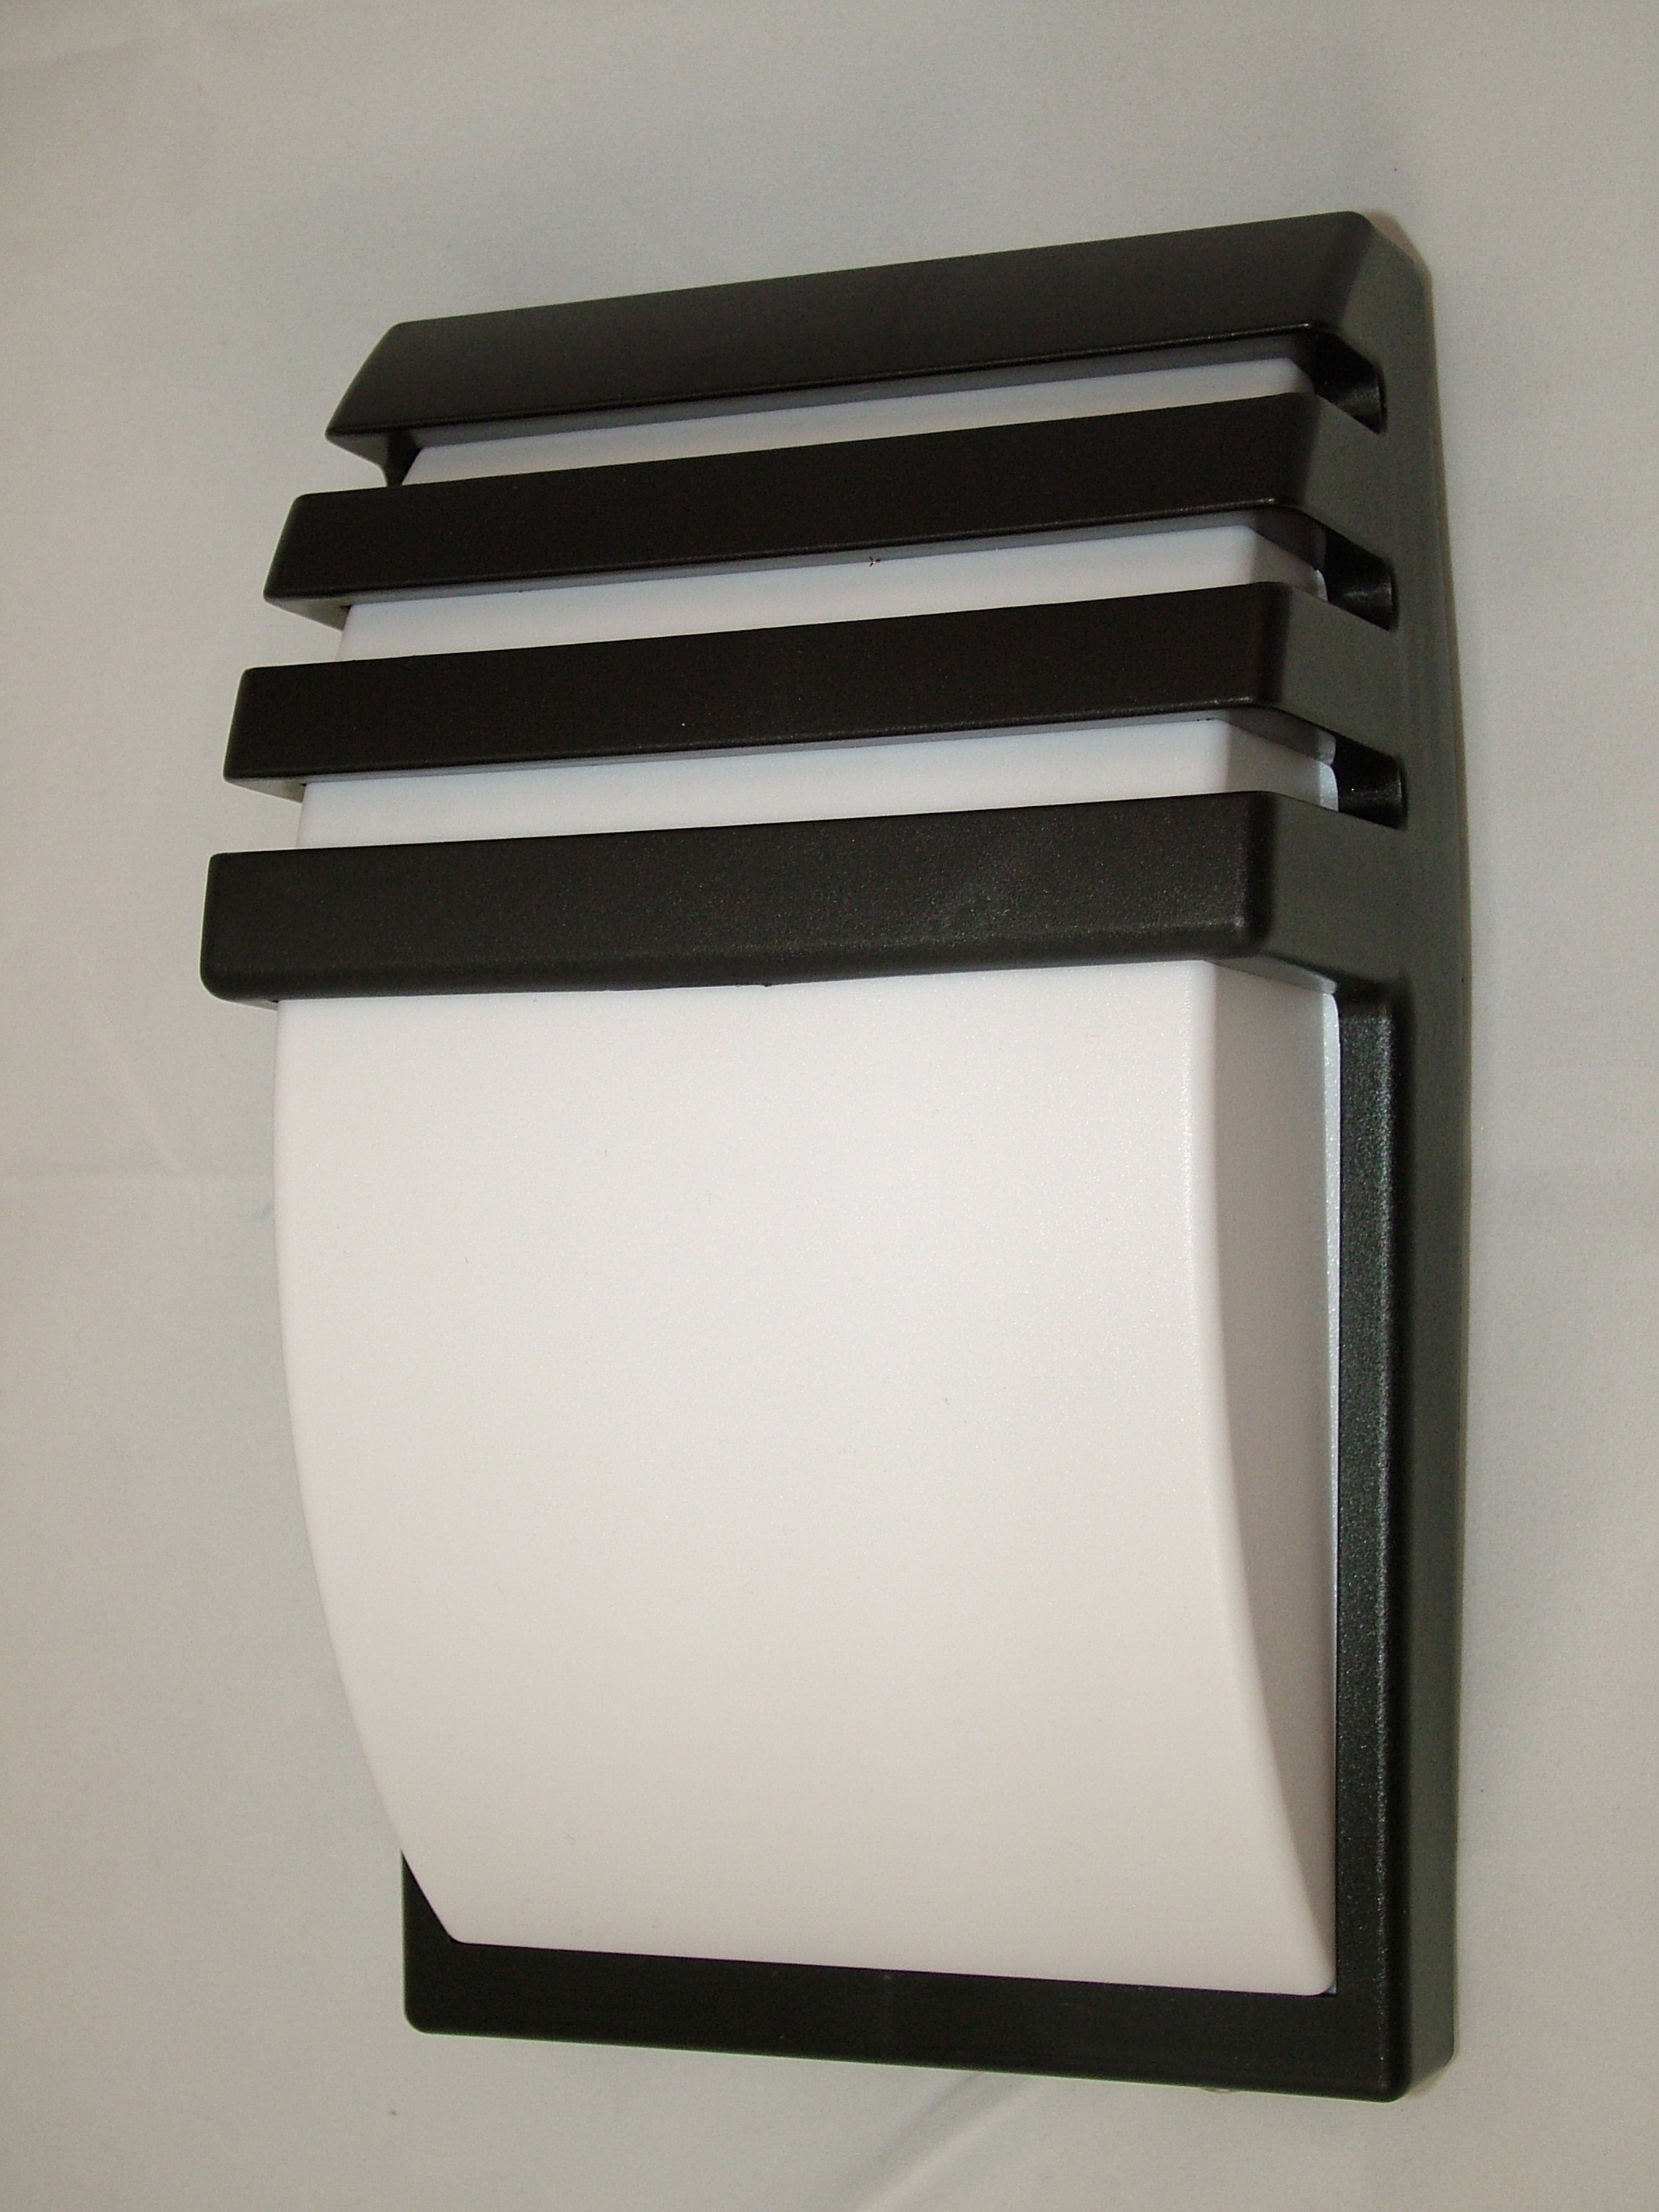 Contemporary Outdoor Wall Mount Lighting Throughout Latest Large Outdoor Modern Wall Mounted Lighting Fixtures With Black (View 10 of 20)